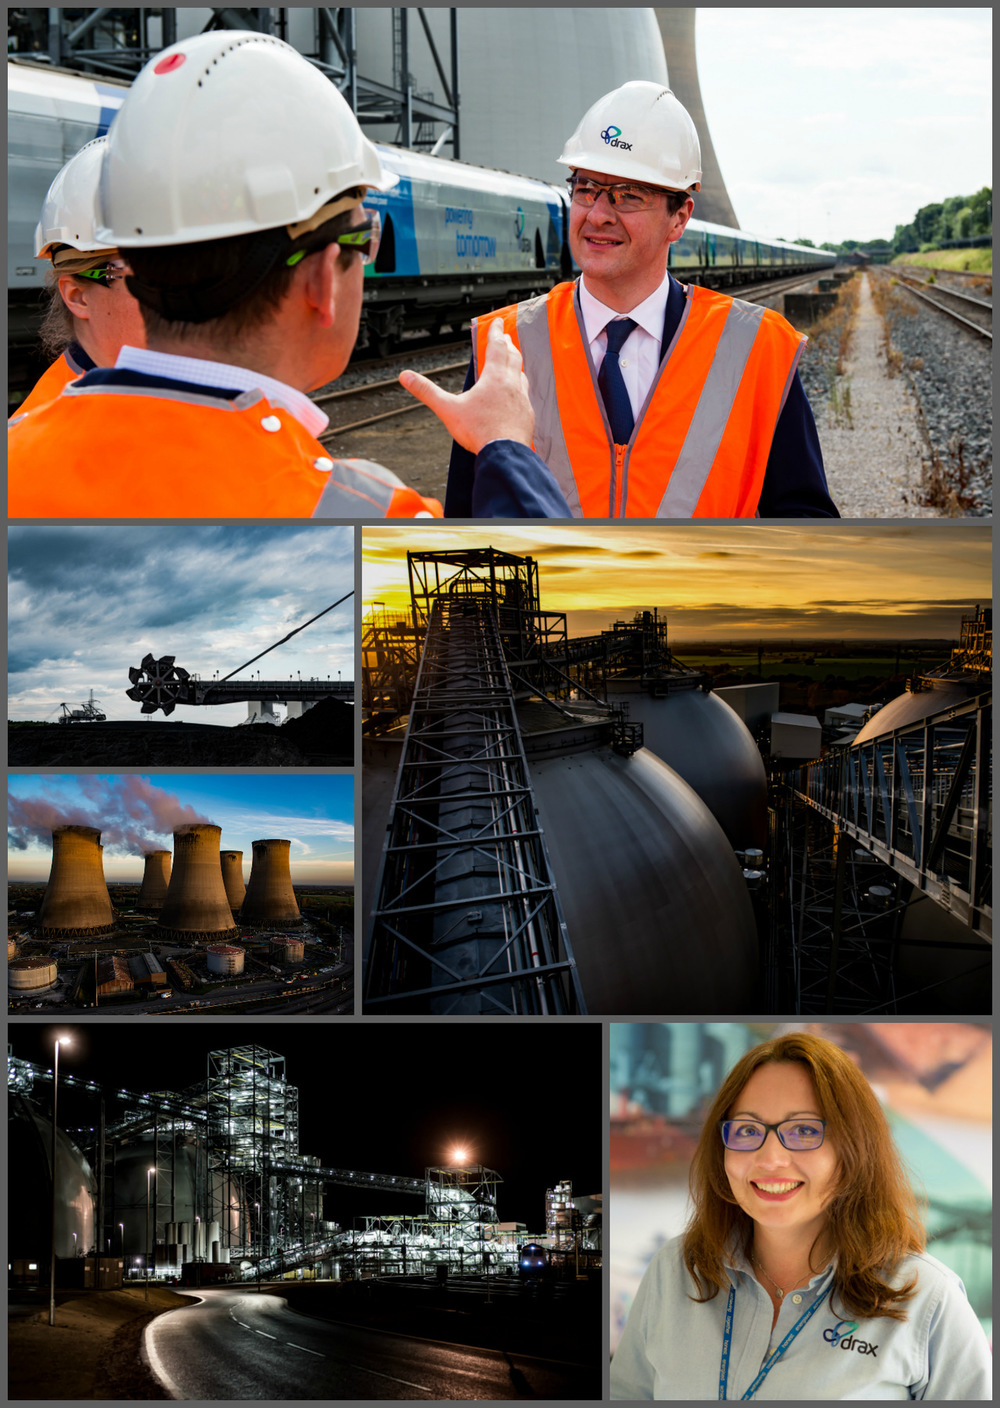 Steven Parker Photography - York based photographer - Commercial & industrial photography for Drax Power Ltd